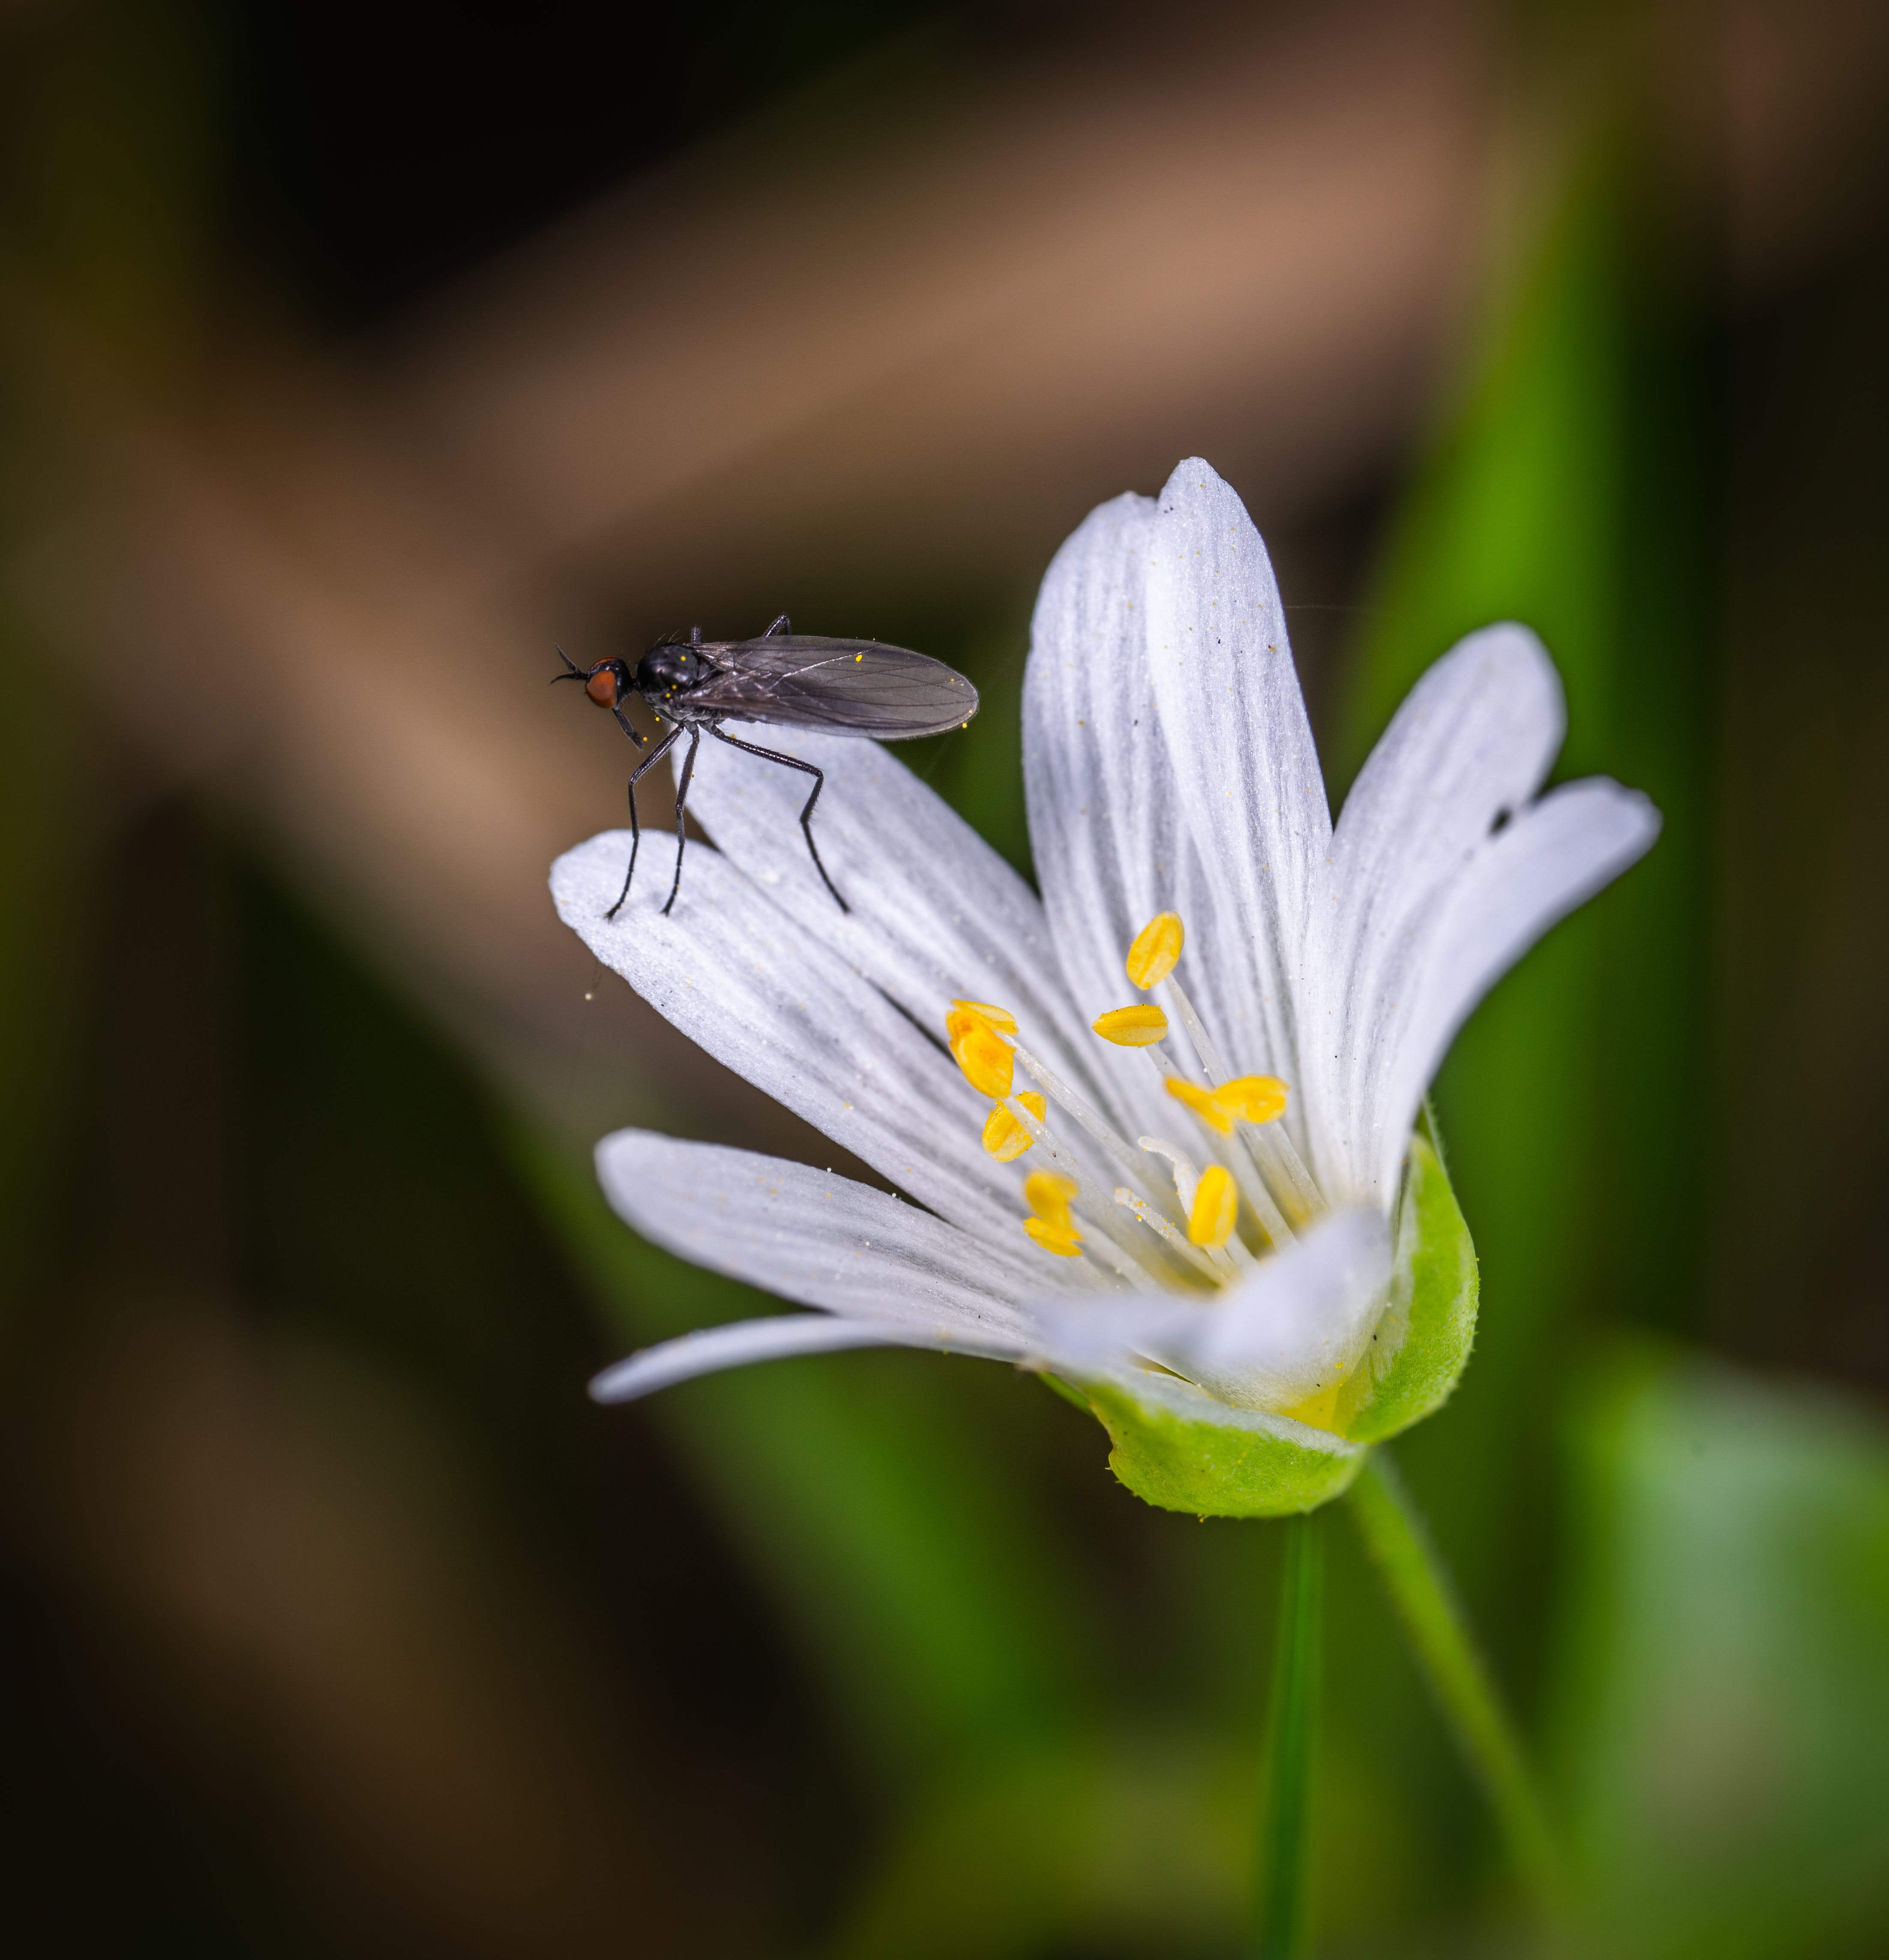 Black Fly on White Clustered Flower